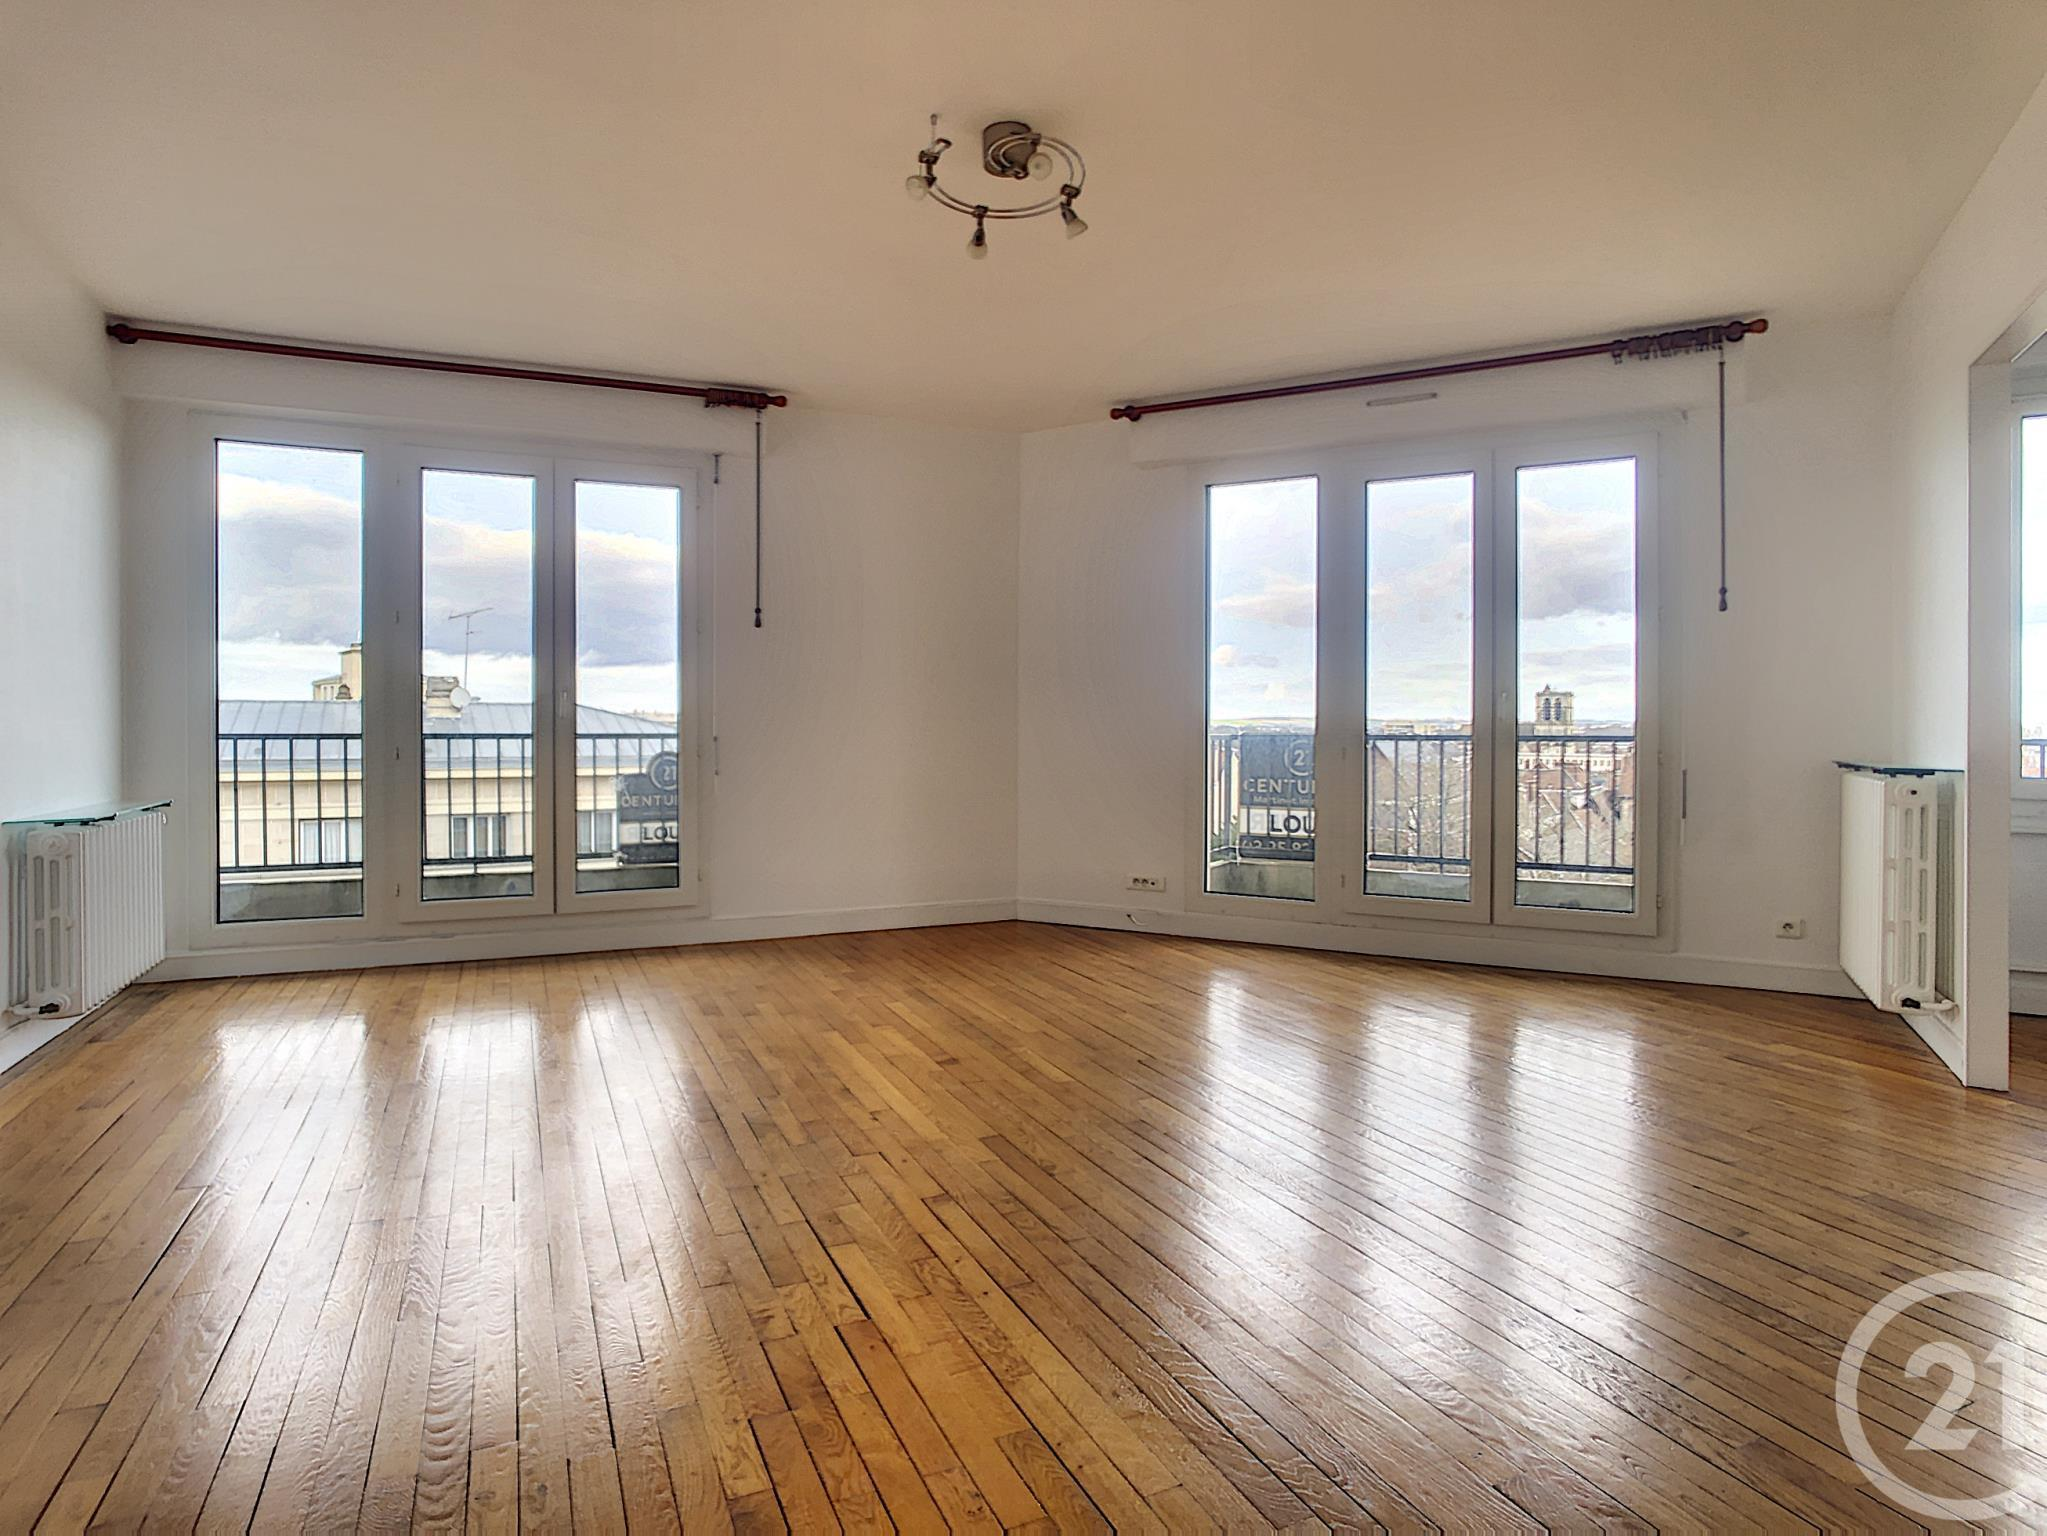 Appartement F5 à louer - 5 pièces - 107,0 m2 - TROYES - 10 - CHAMPAGNE-ARDENNE